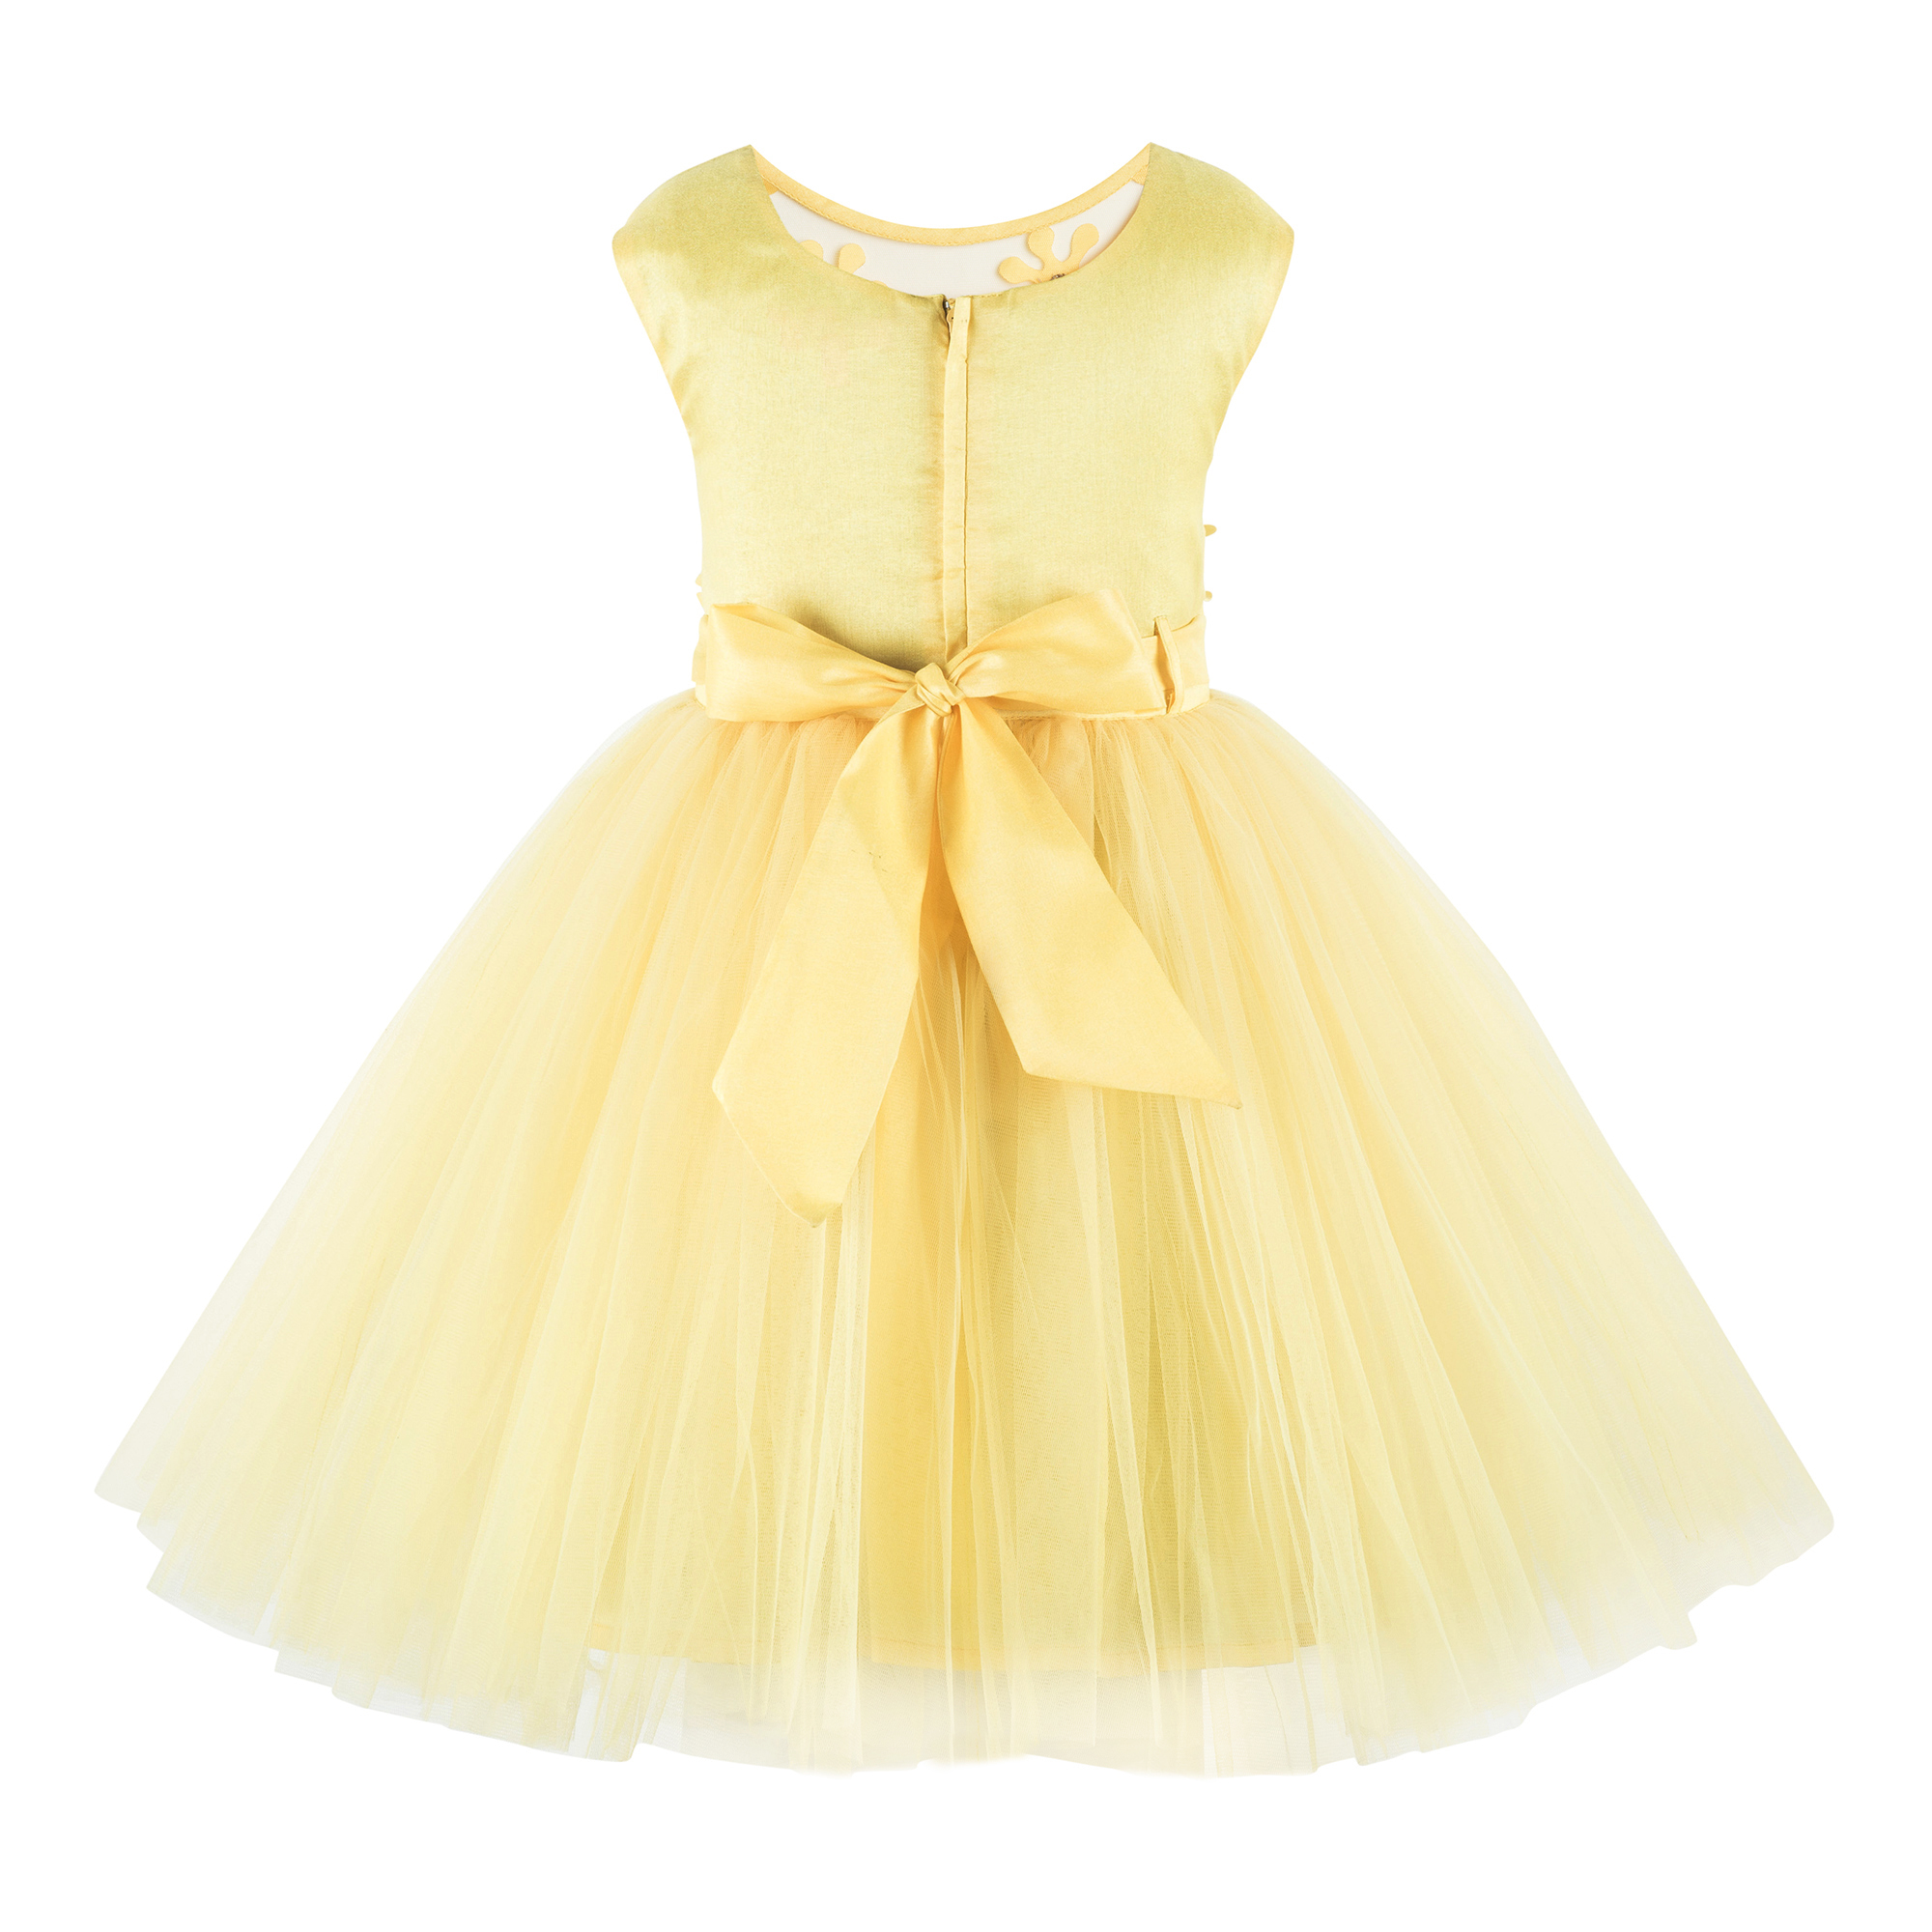 Flower Applique Yellow  Frock.